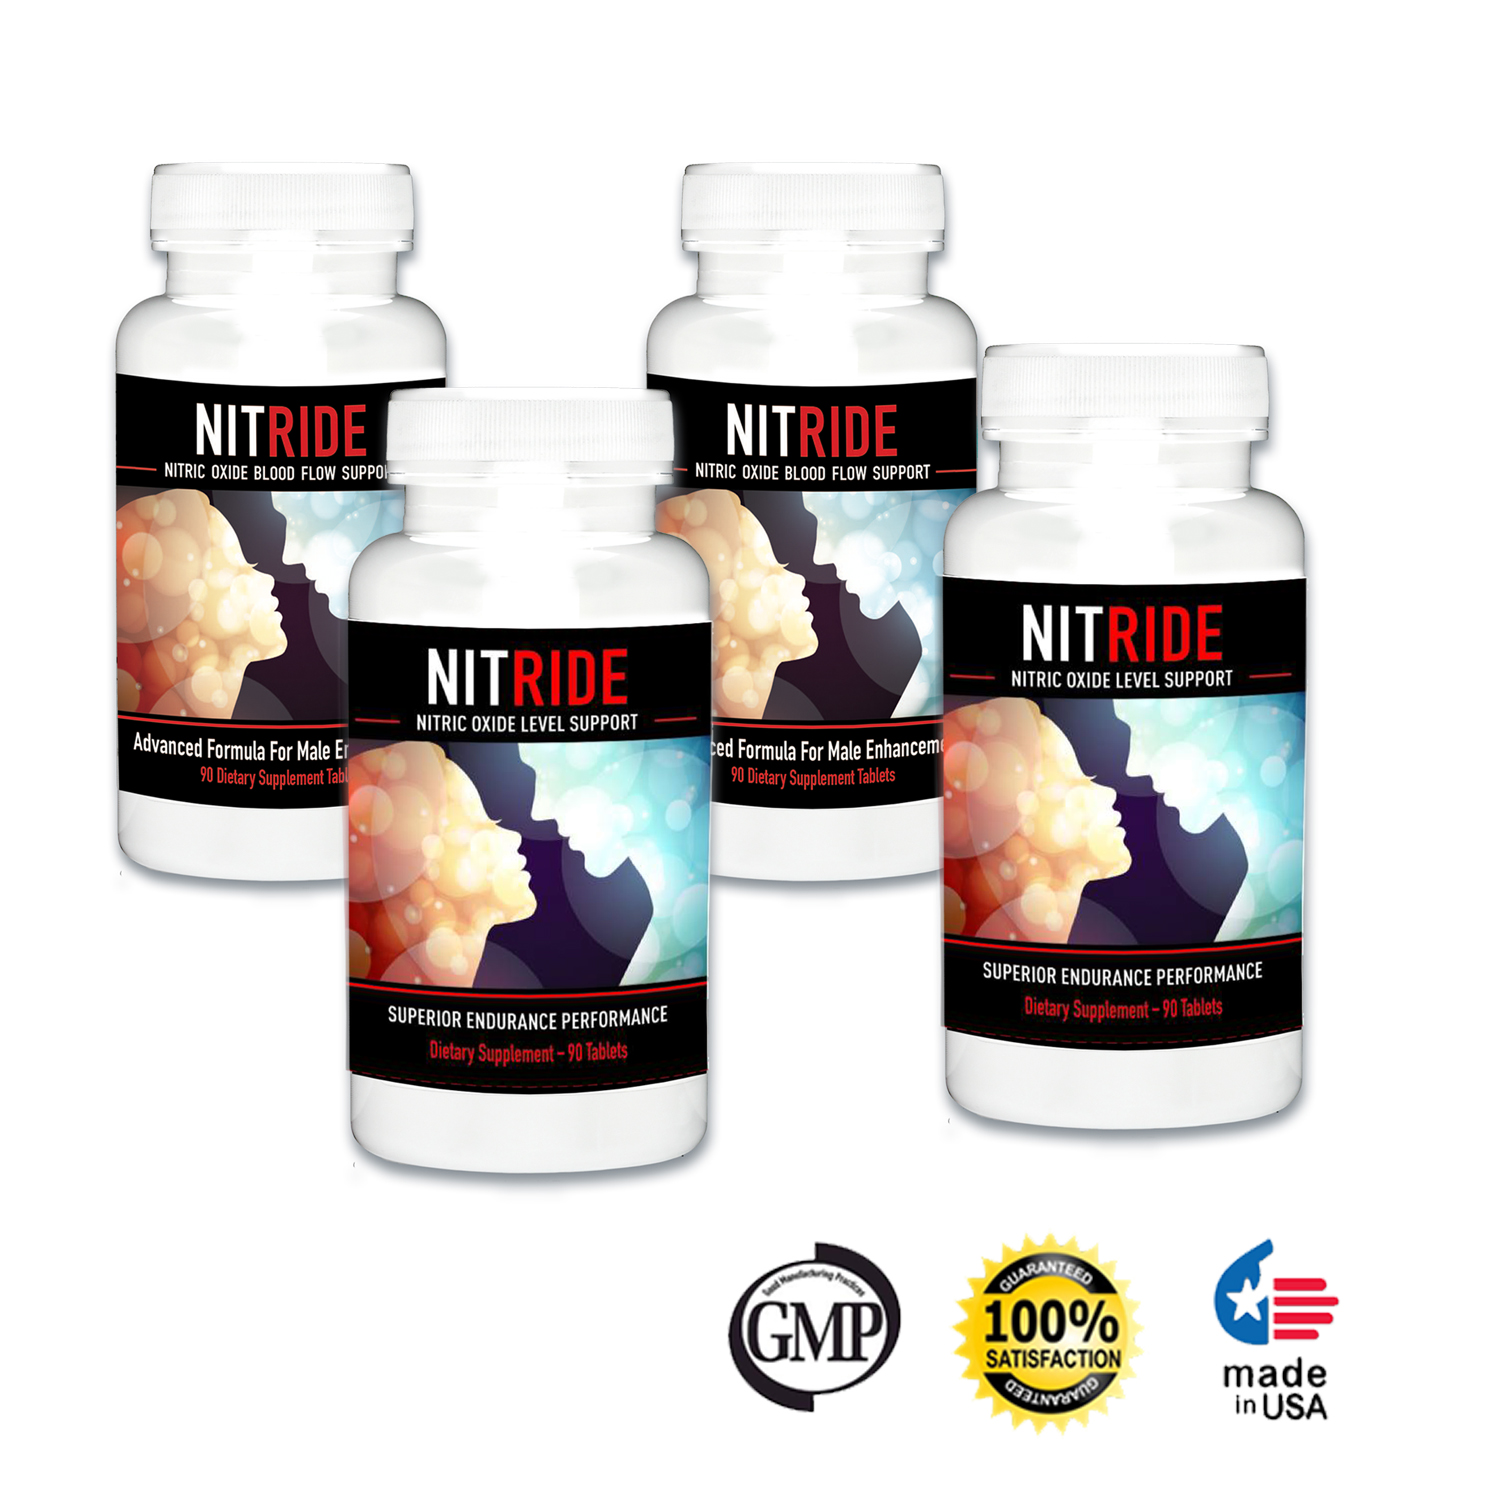 Nitride Premium Nitric Oxide Booster For Increased Blood Flow, Stamina, Stimulate Libido & Ability, Men, Push Beyond Former Limits Today (4 Bottles)